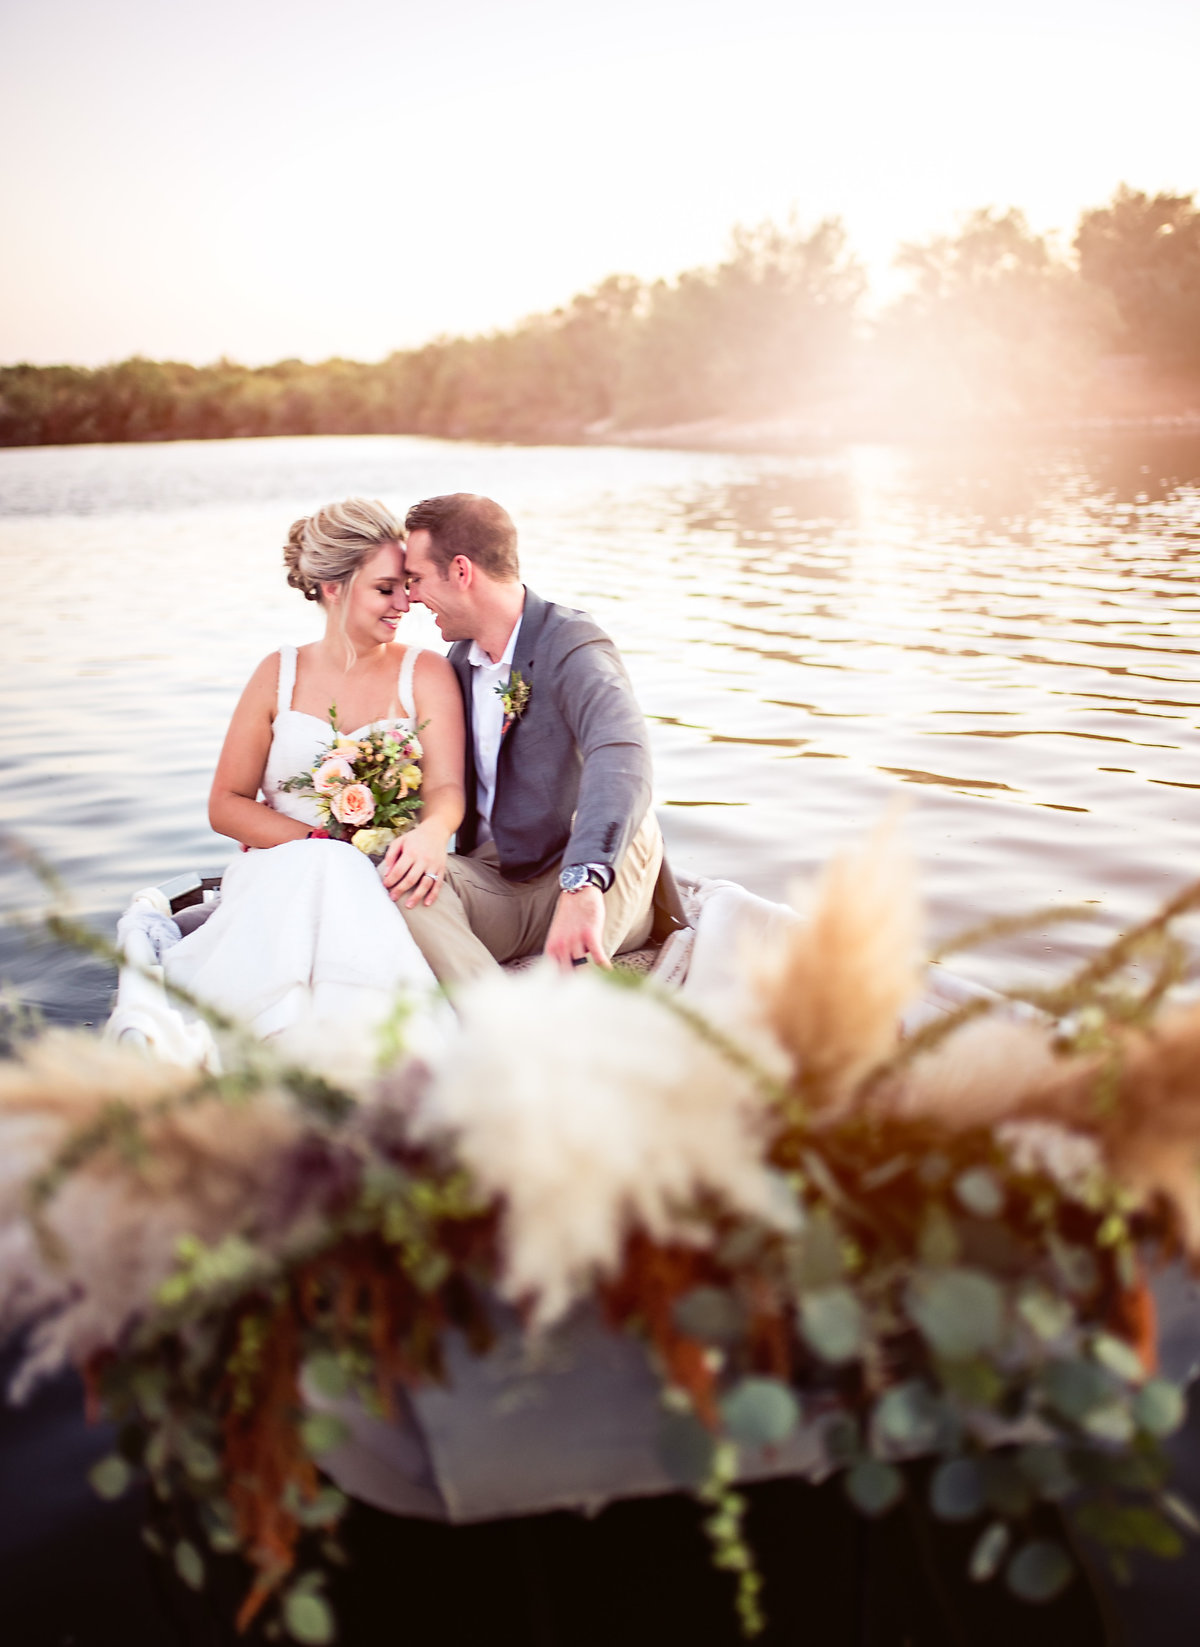 Couples wedding at Hidden Lakes Wedding Venue in Phoenix, Arizona